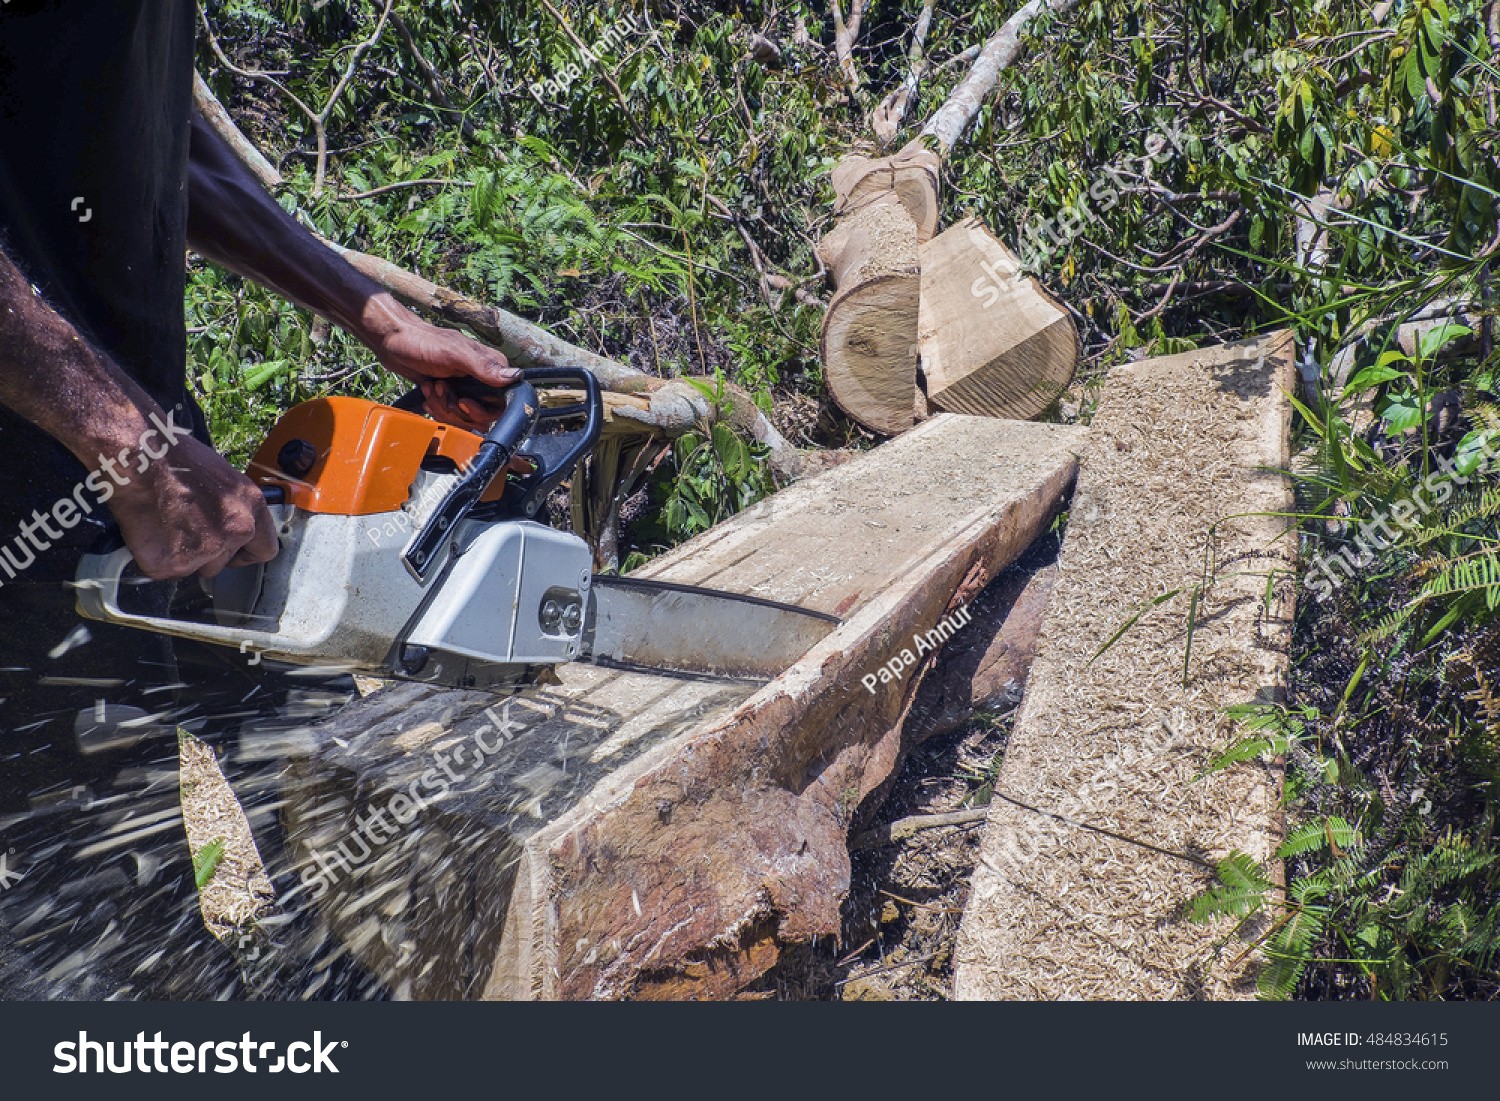 how to cut a log flat with a chainsaw